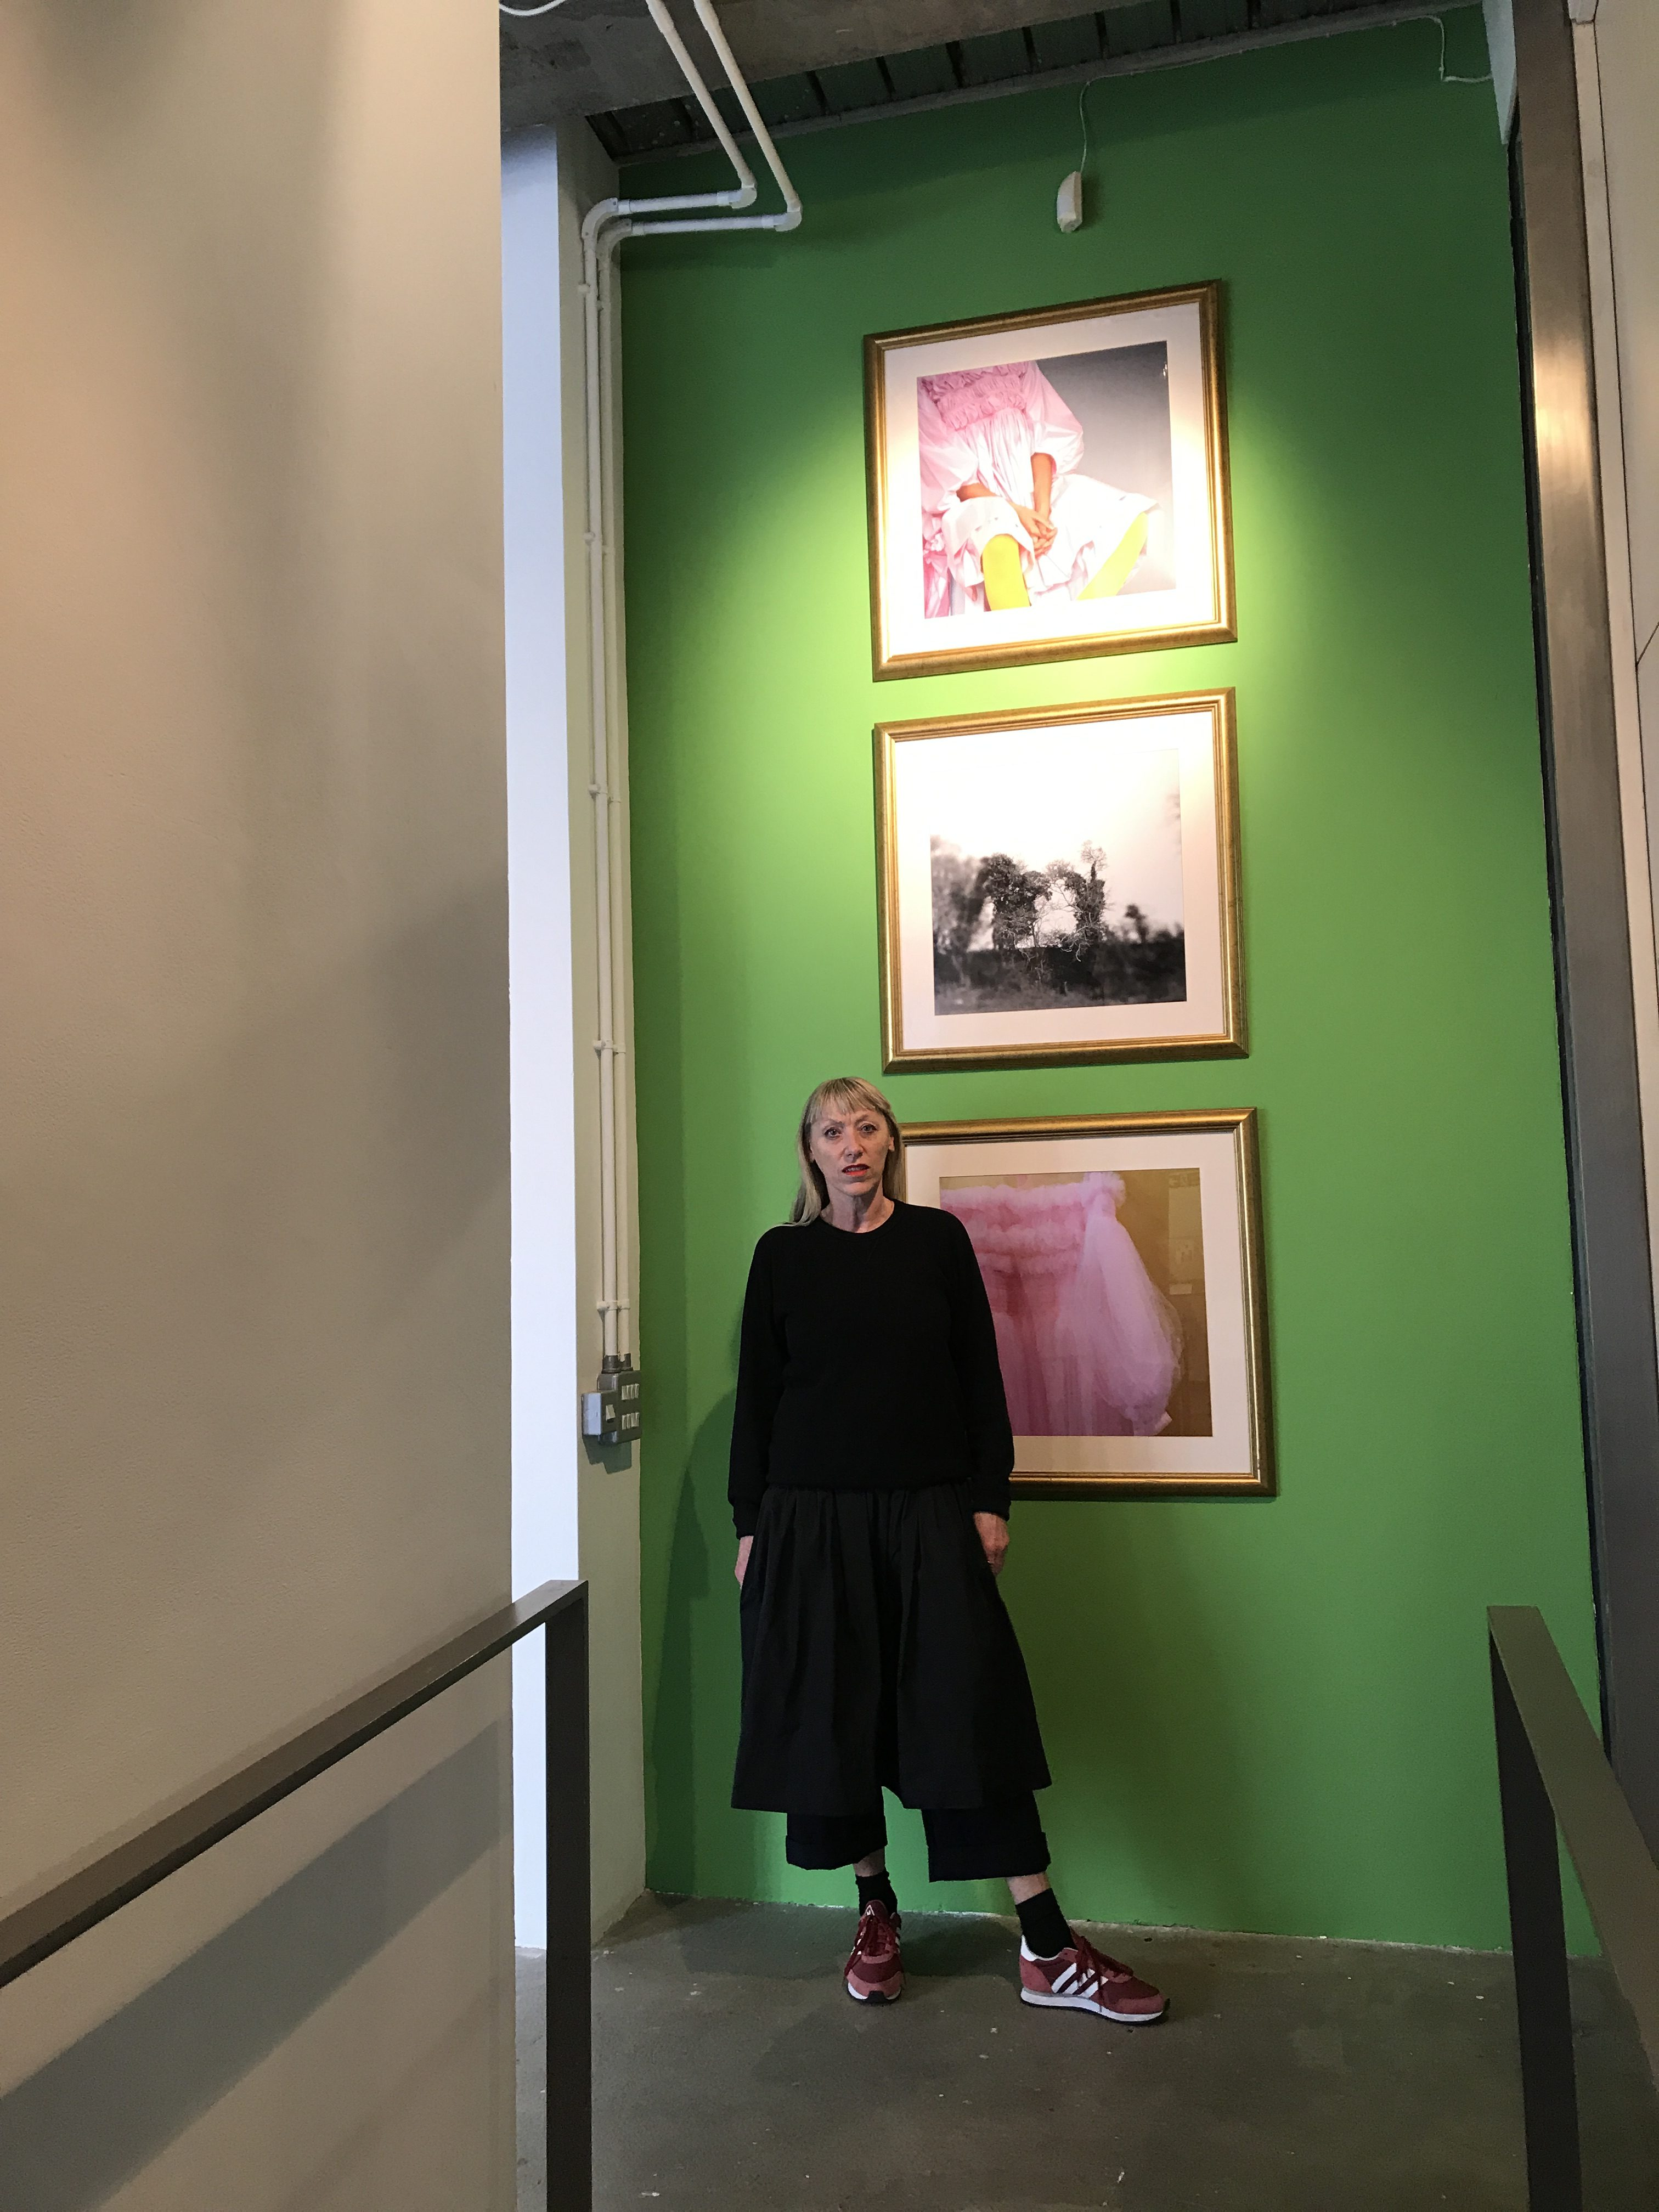 sarah edwards in front of green wall